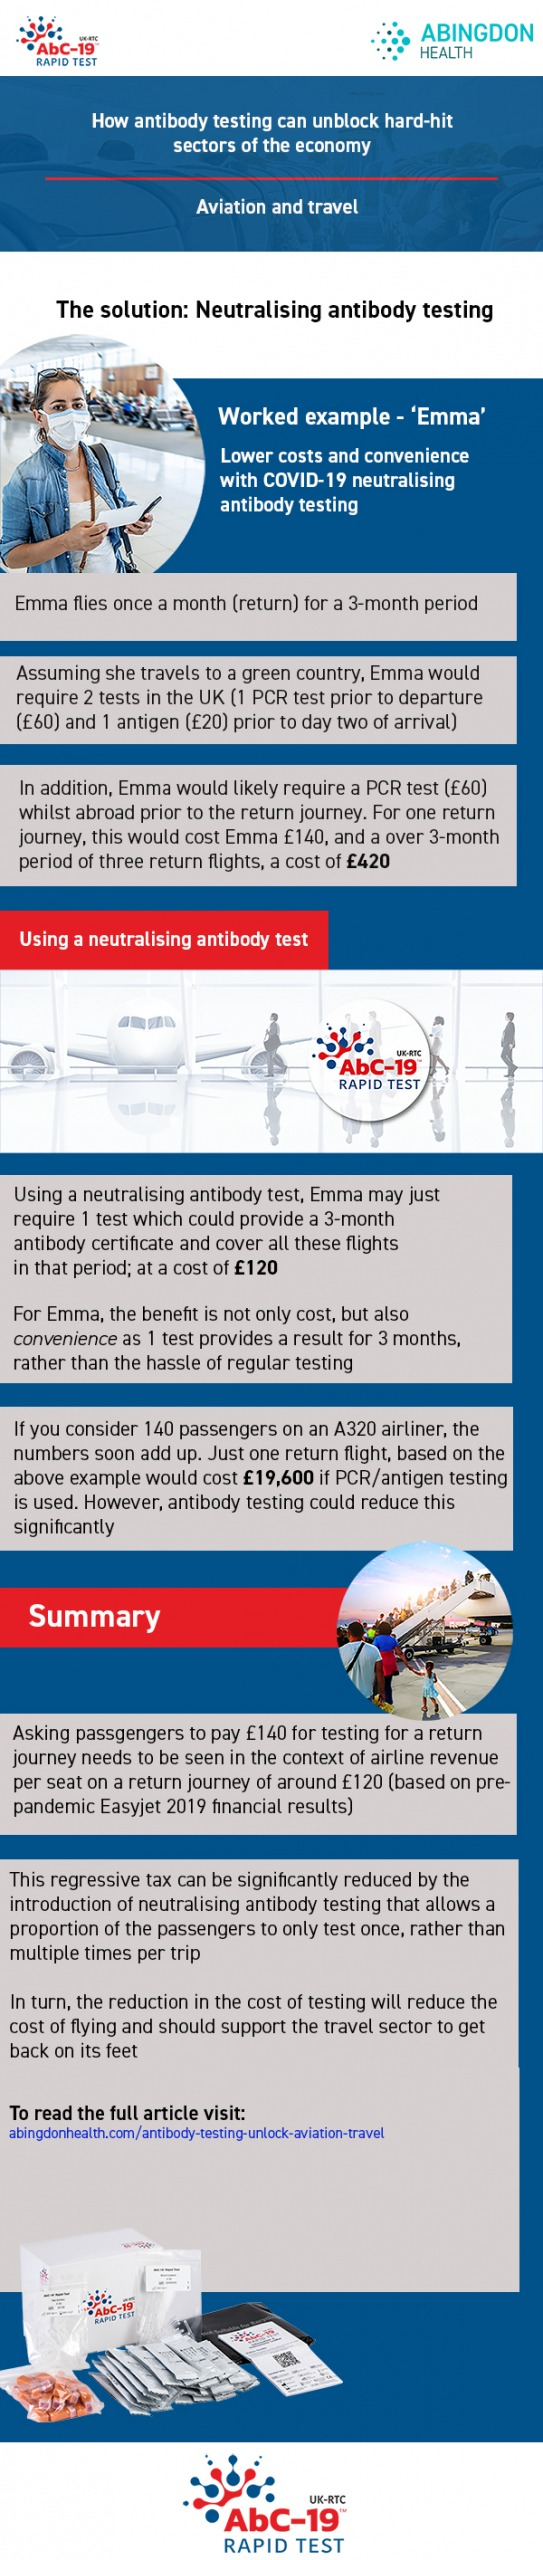 Infographic with a COVID antibody testing method for aviation and travel